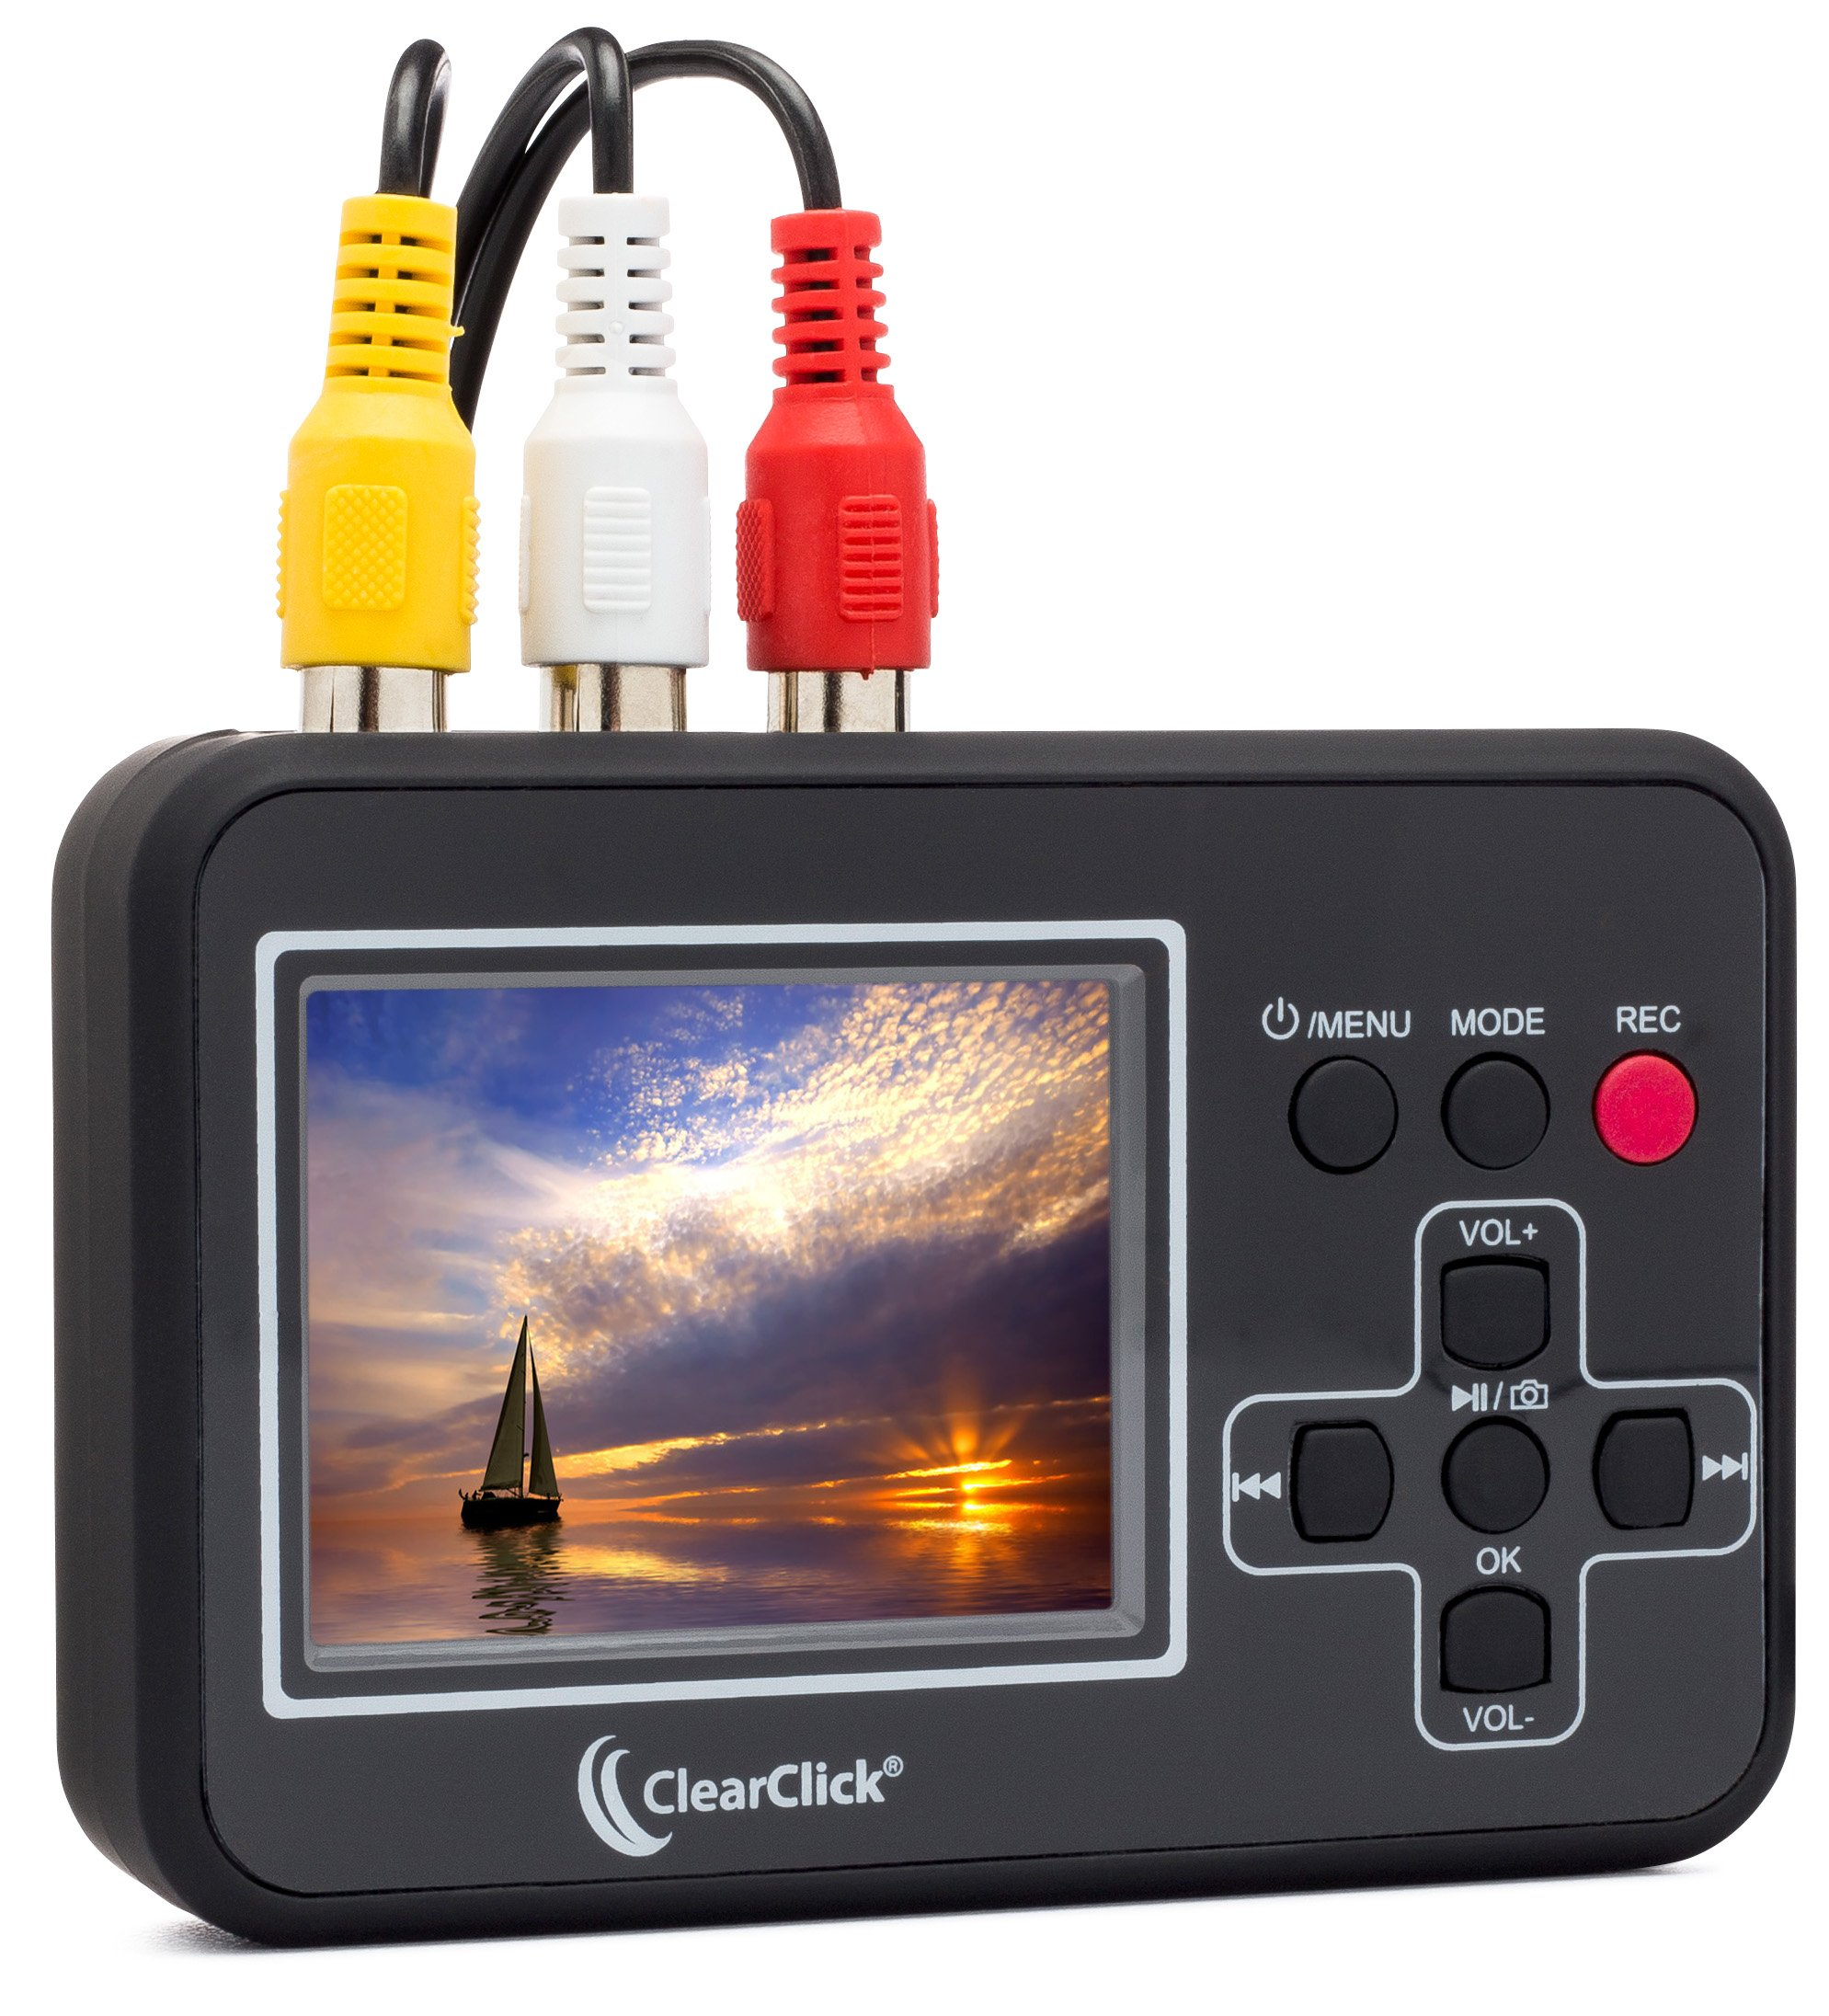 Amazon Com Clearclick Video To Digital Converter Capture Video From Vcr S Vhs Tapes Hi8 Camcorder Dvd Gaming Systems Electronics